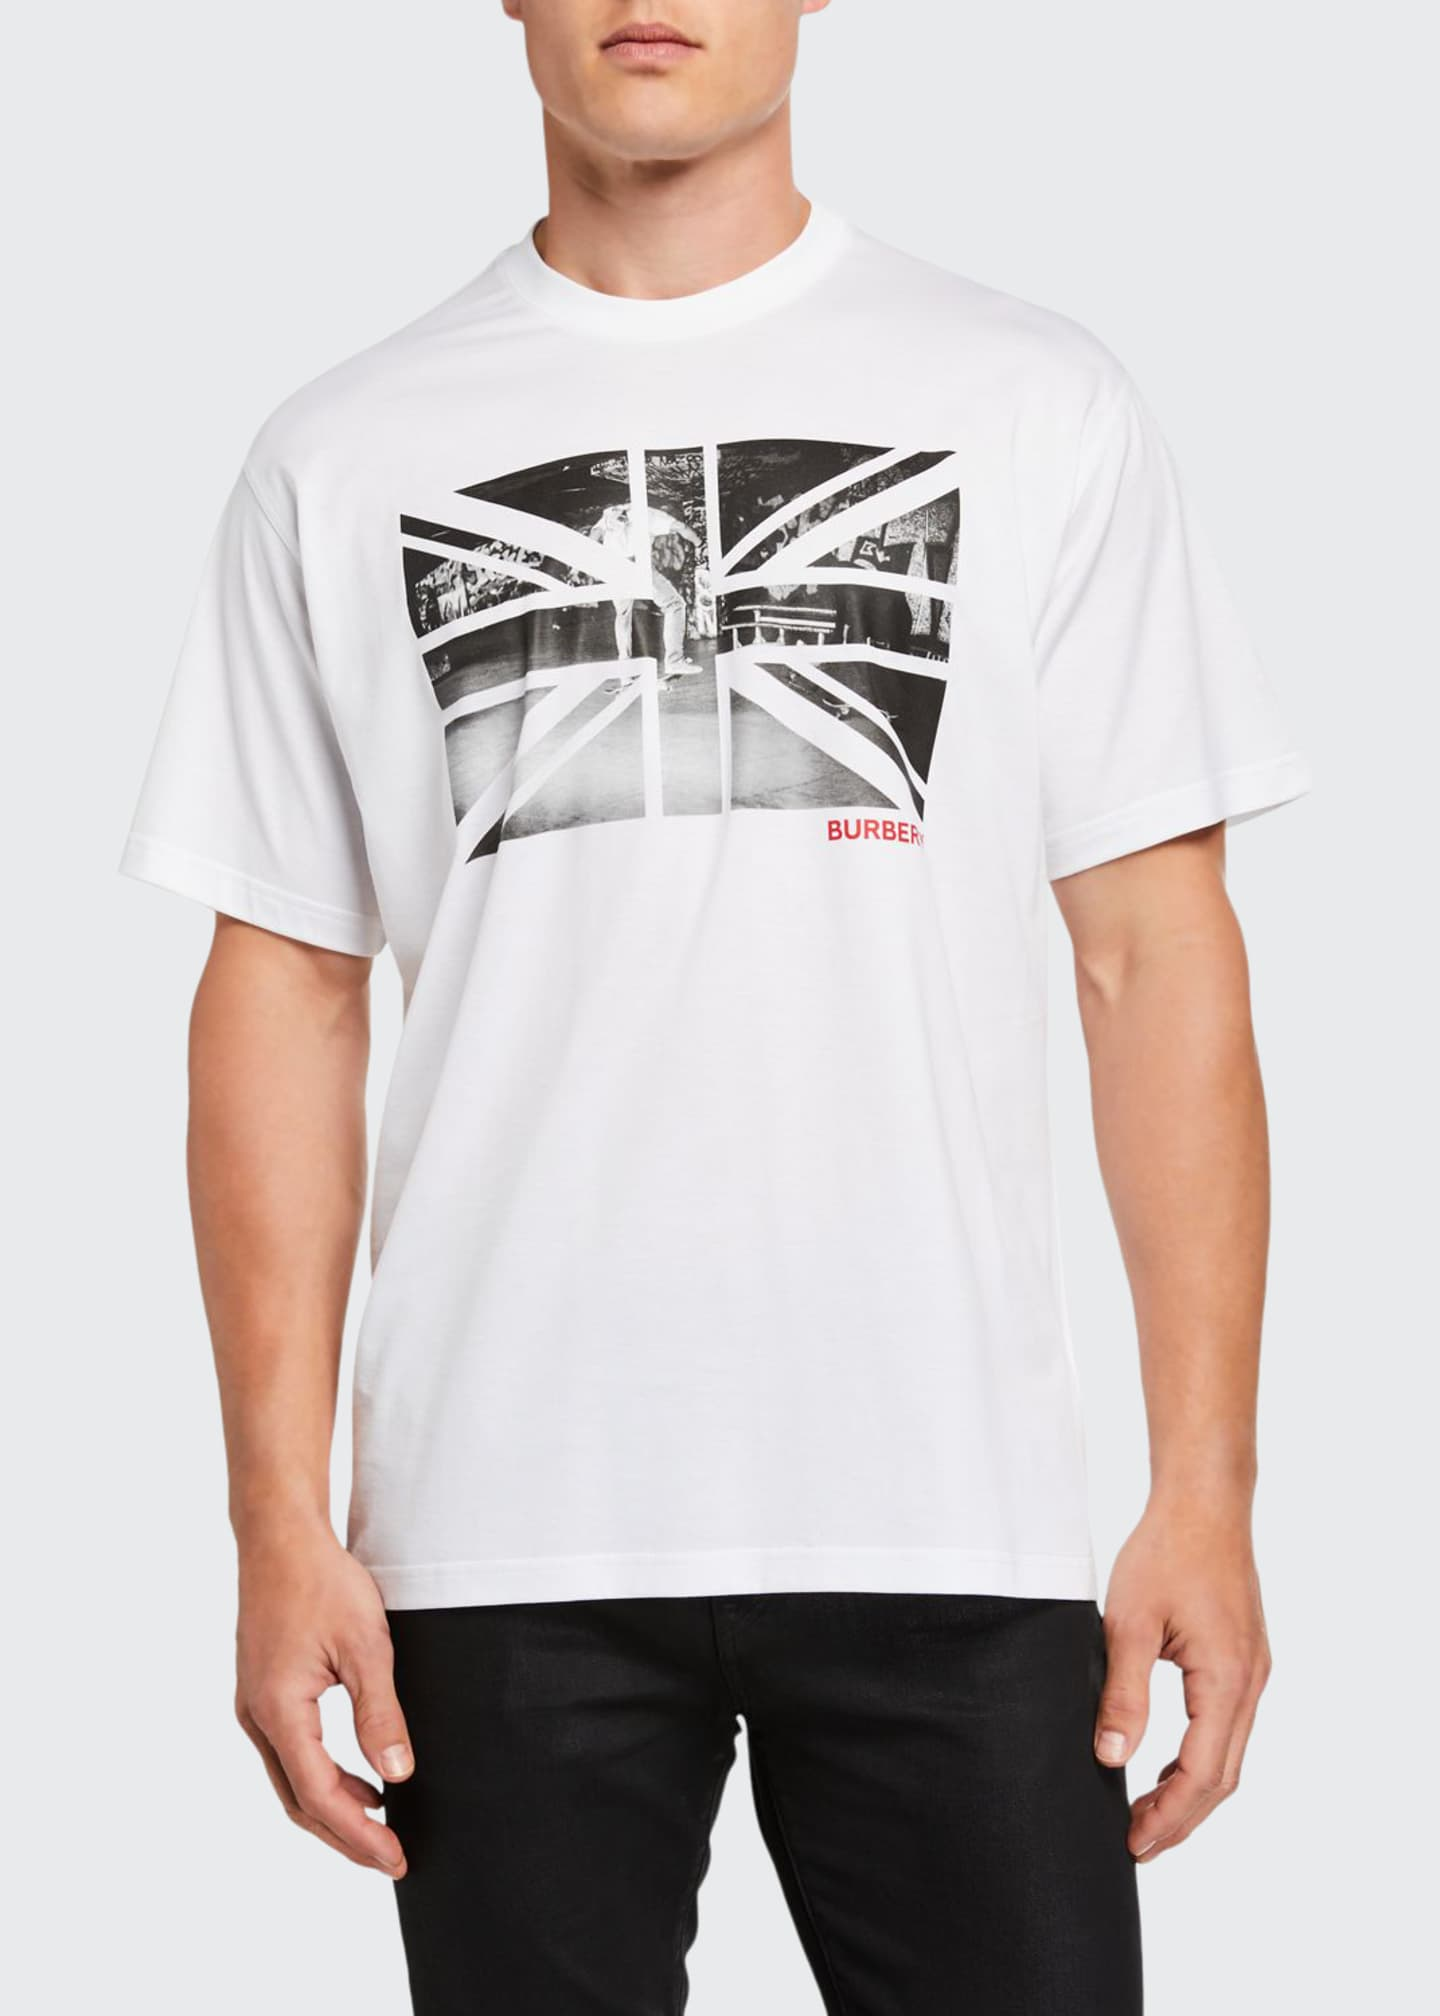 Burberry Men's Howlett Graphic Short-Sleeve T-Shirt